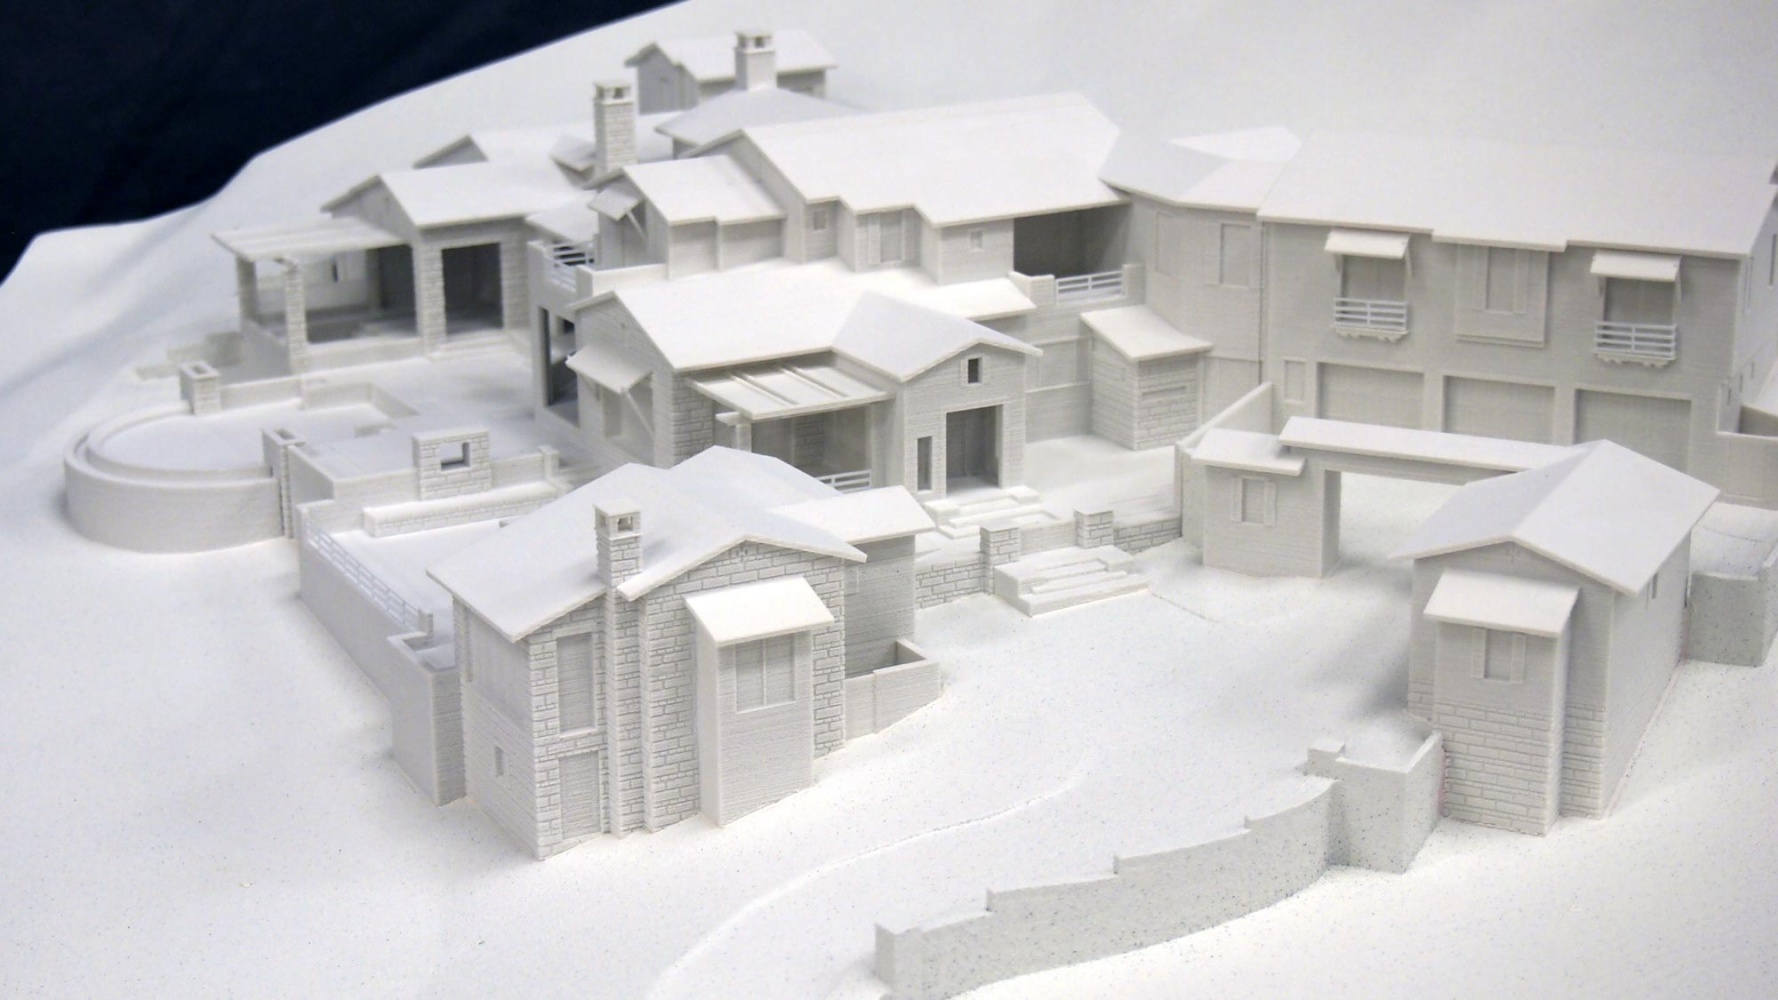 Dale garton design desert mountain 3d printed drc model lgm for House project online